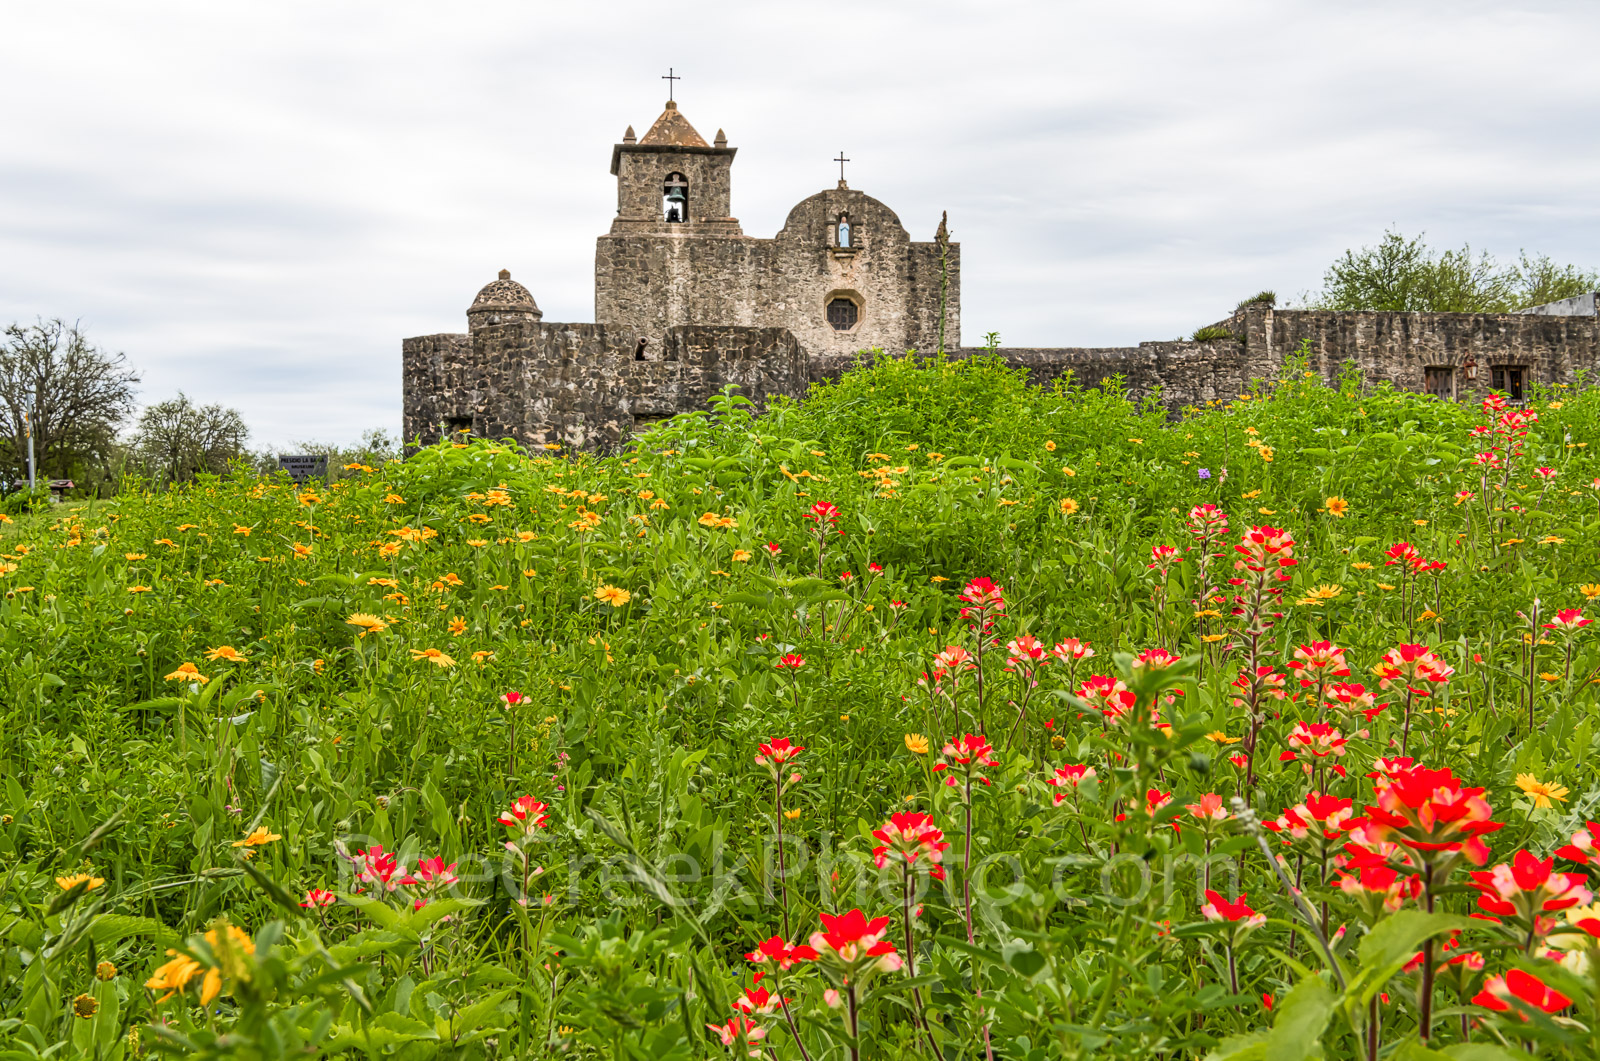 Wildflowers at Presidio Goliad - This is another capture of Presidio La Bahí in Goliad on a spring day with texas wildflowers...